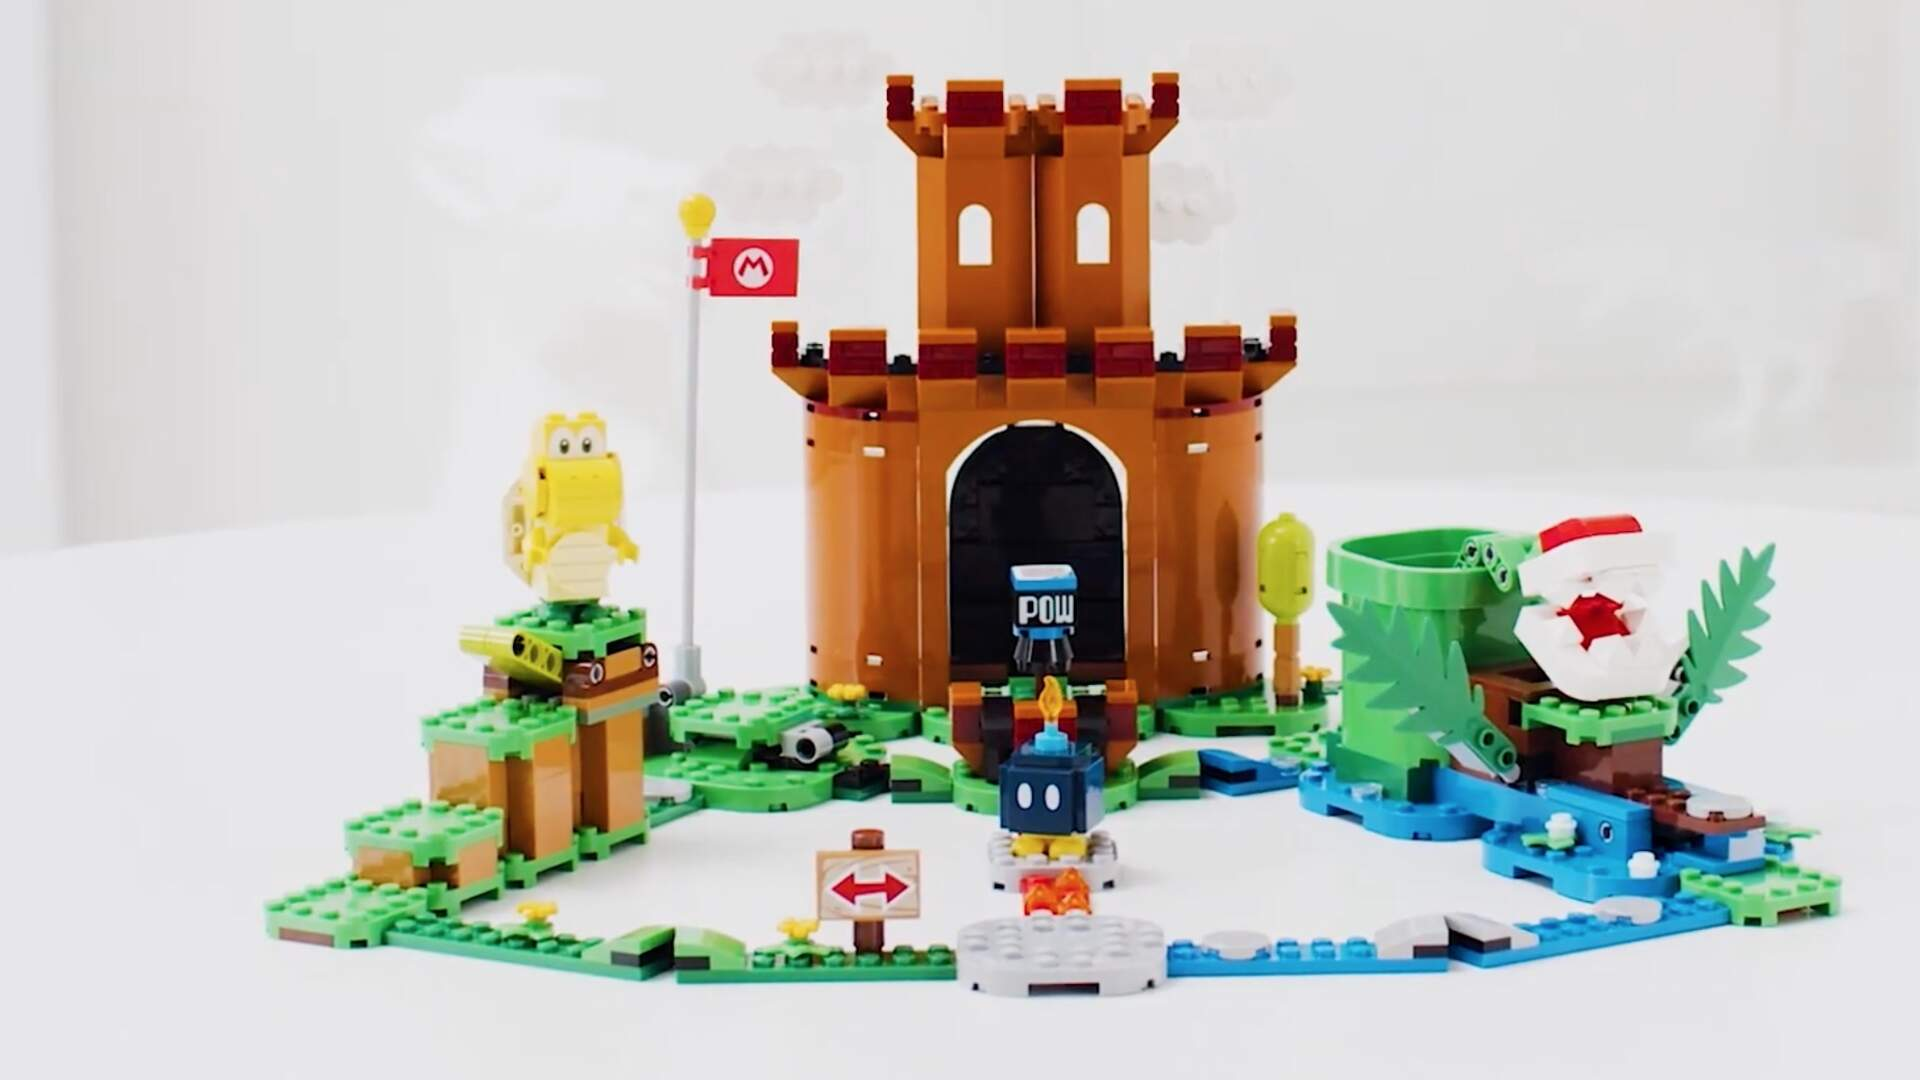 New Lego Mario Sets Introduce Yoshi, King Boo, Koopa Troopa, and More